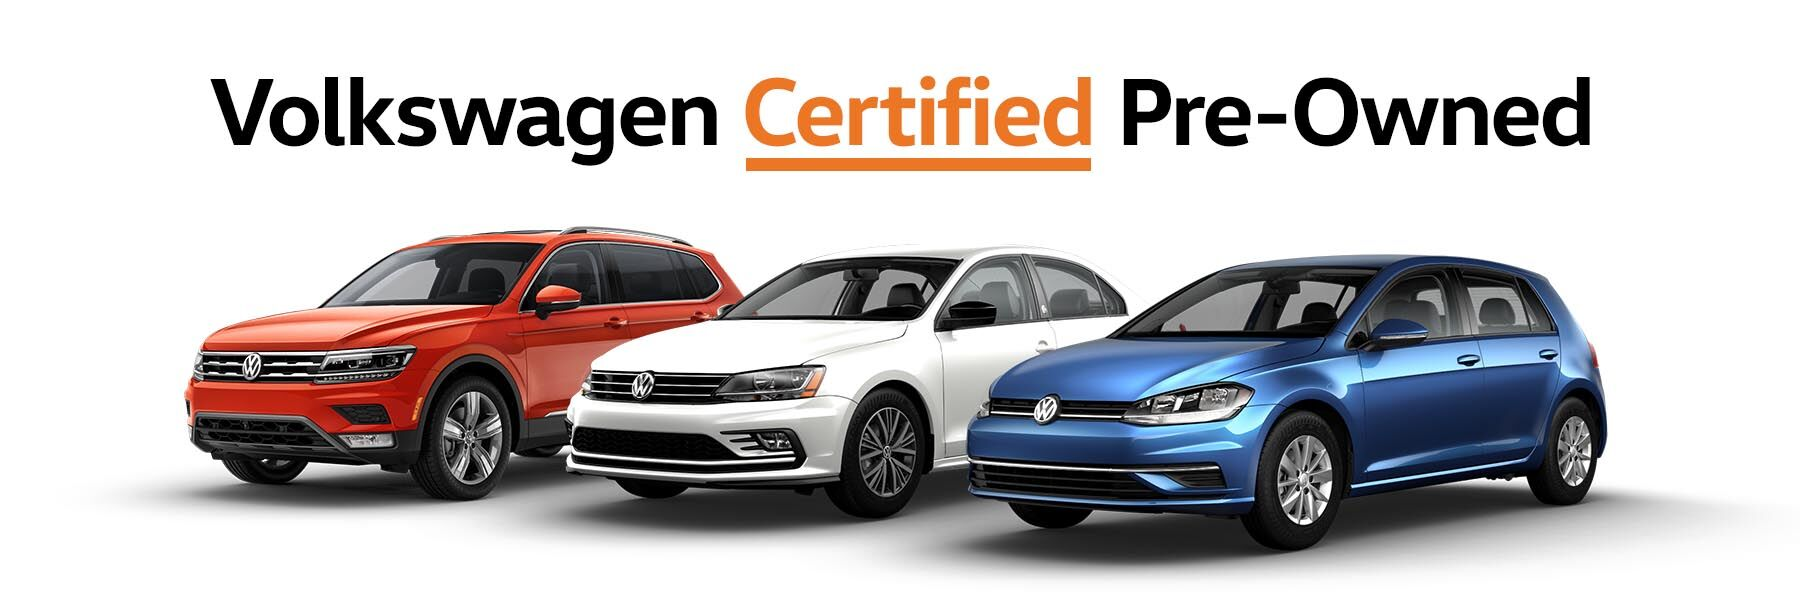 Volkswagen Certified Pre-Owned in Salt Lake City, UT